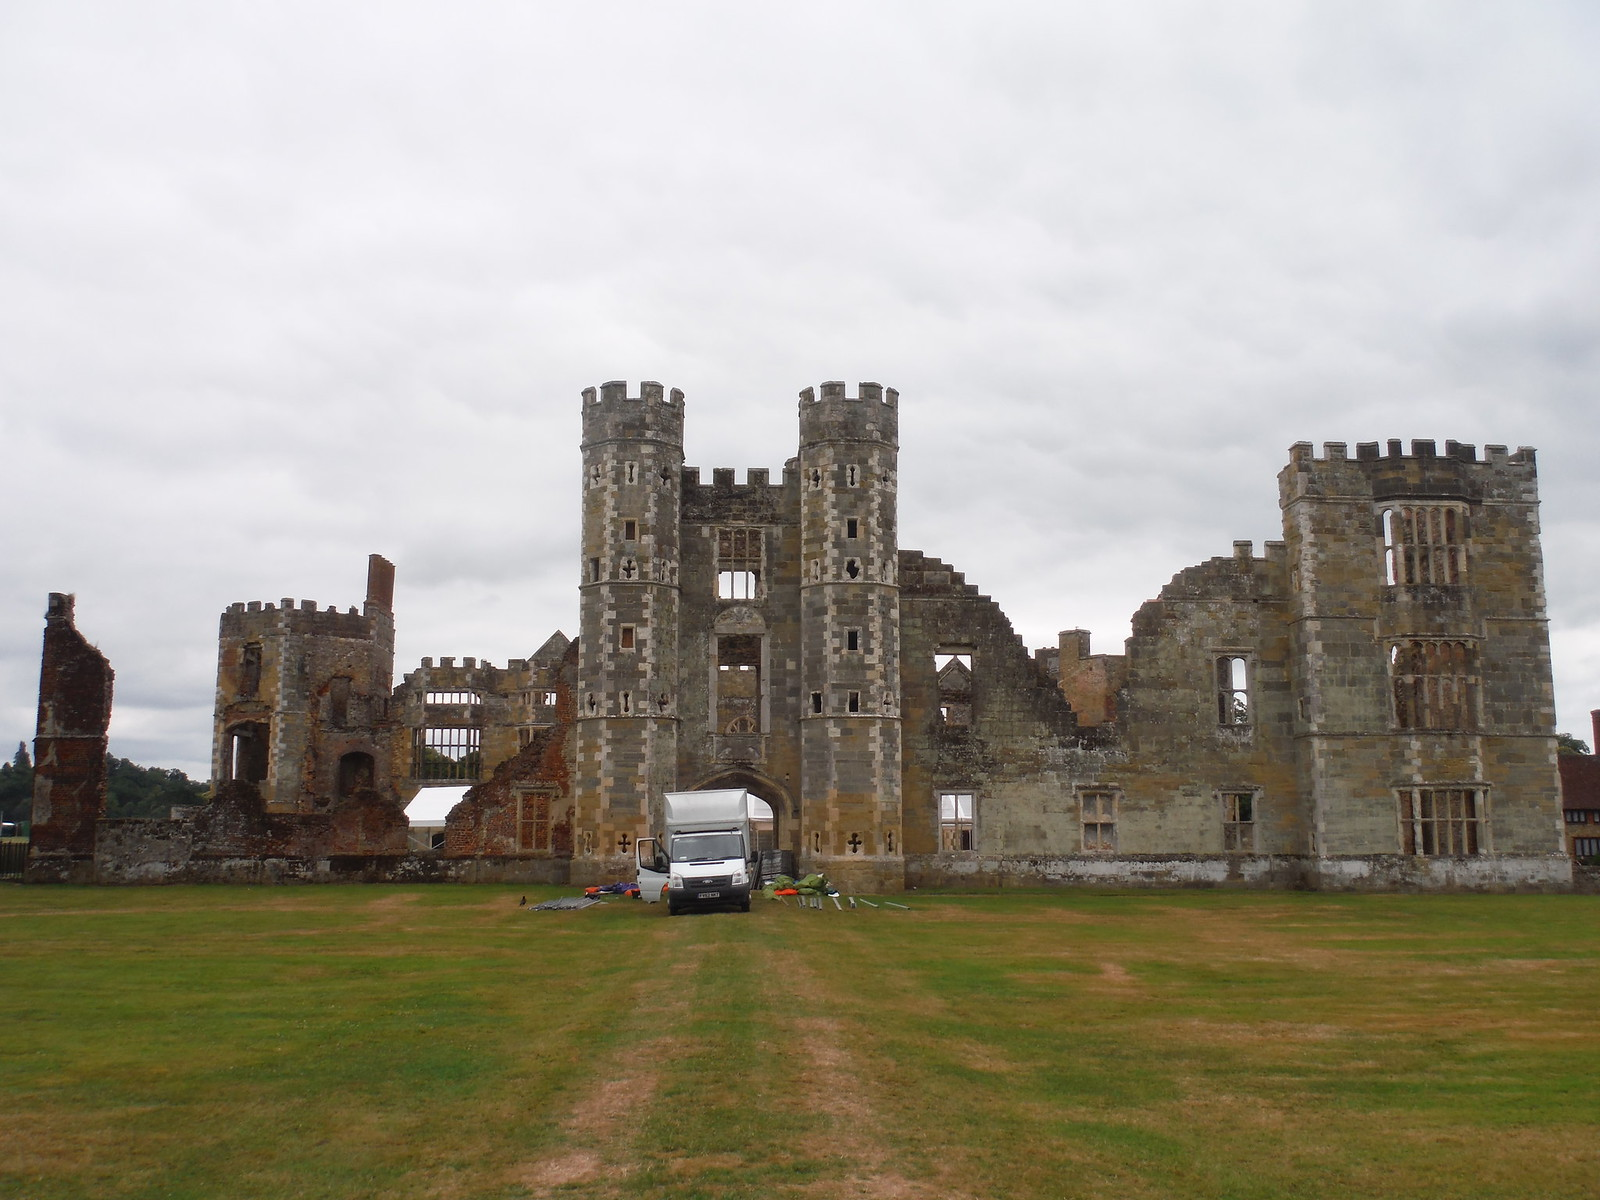 Cowdray House Ruins SWC Walk 218 Haslemere to Midhurst (The Midhurst Way)